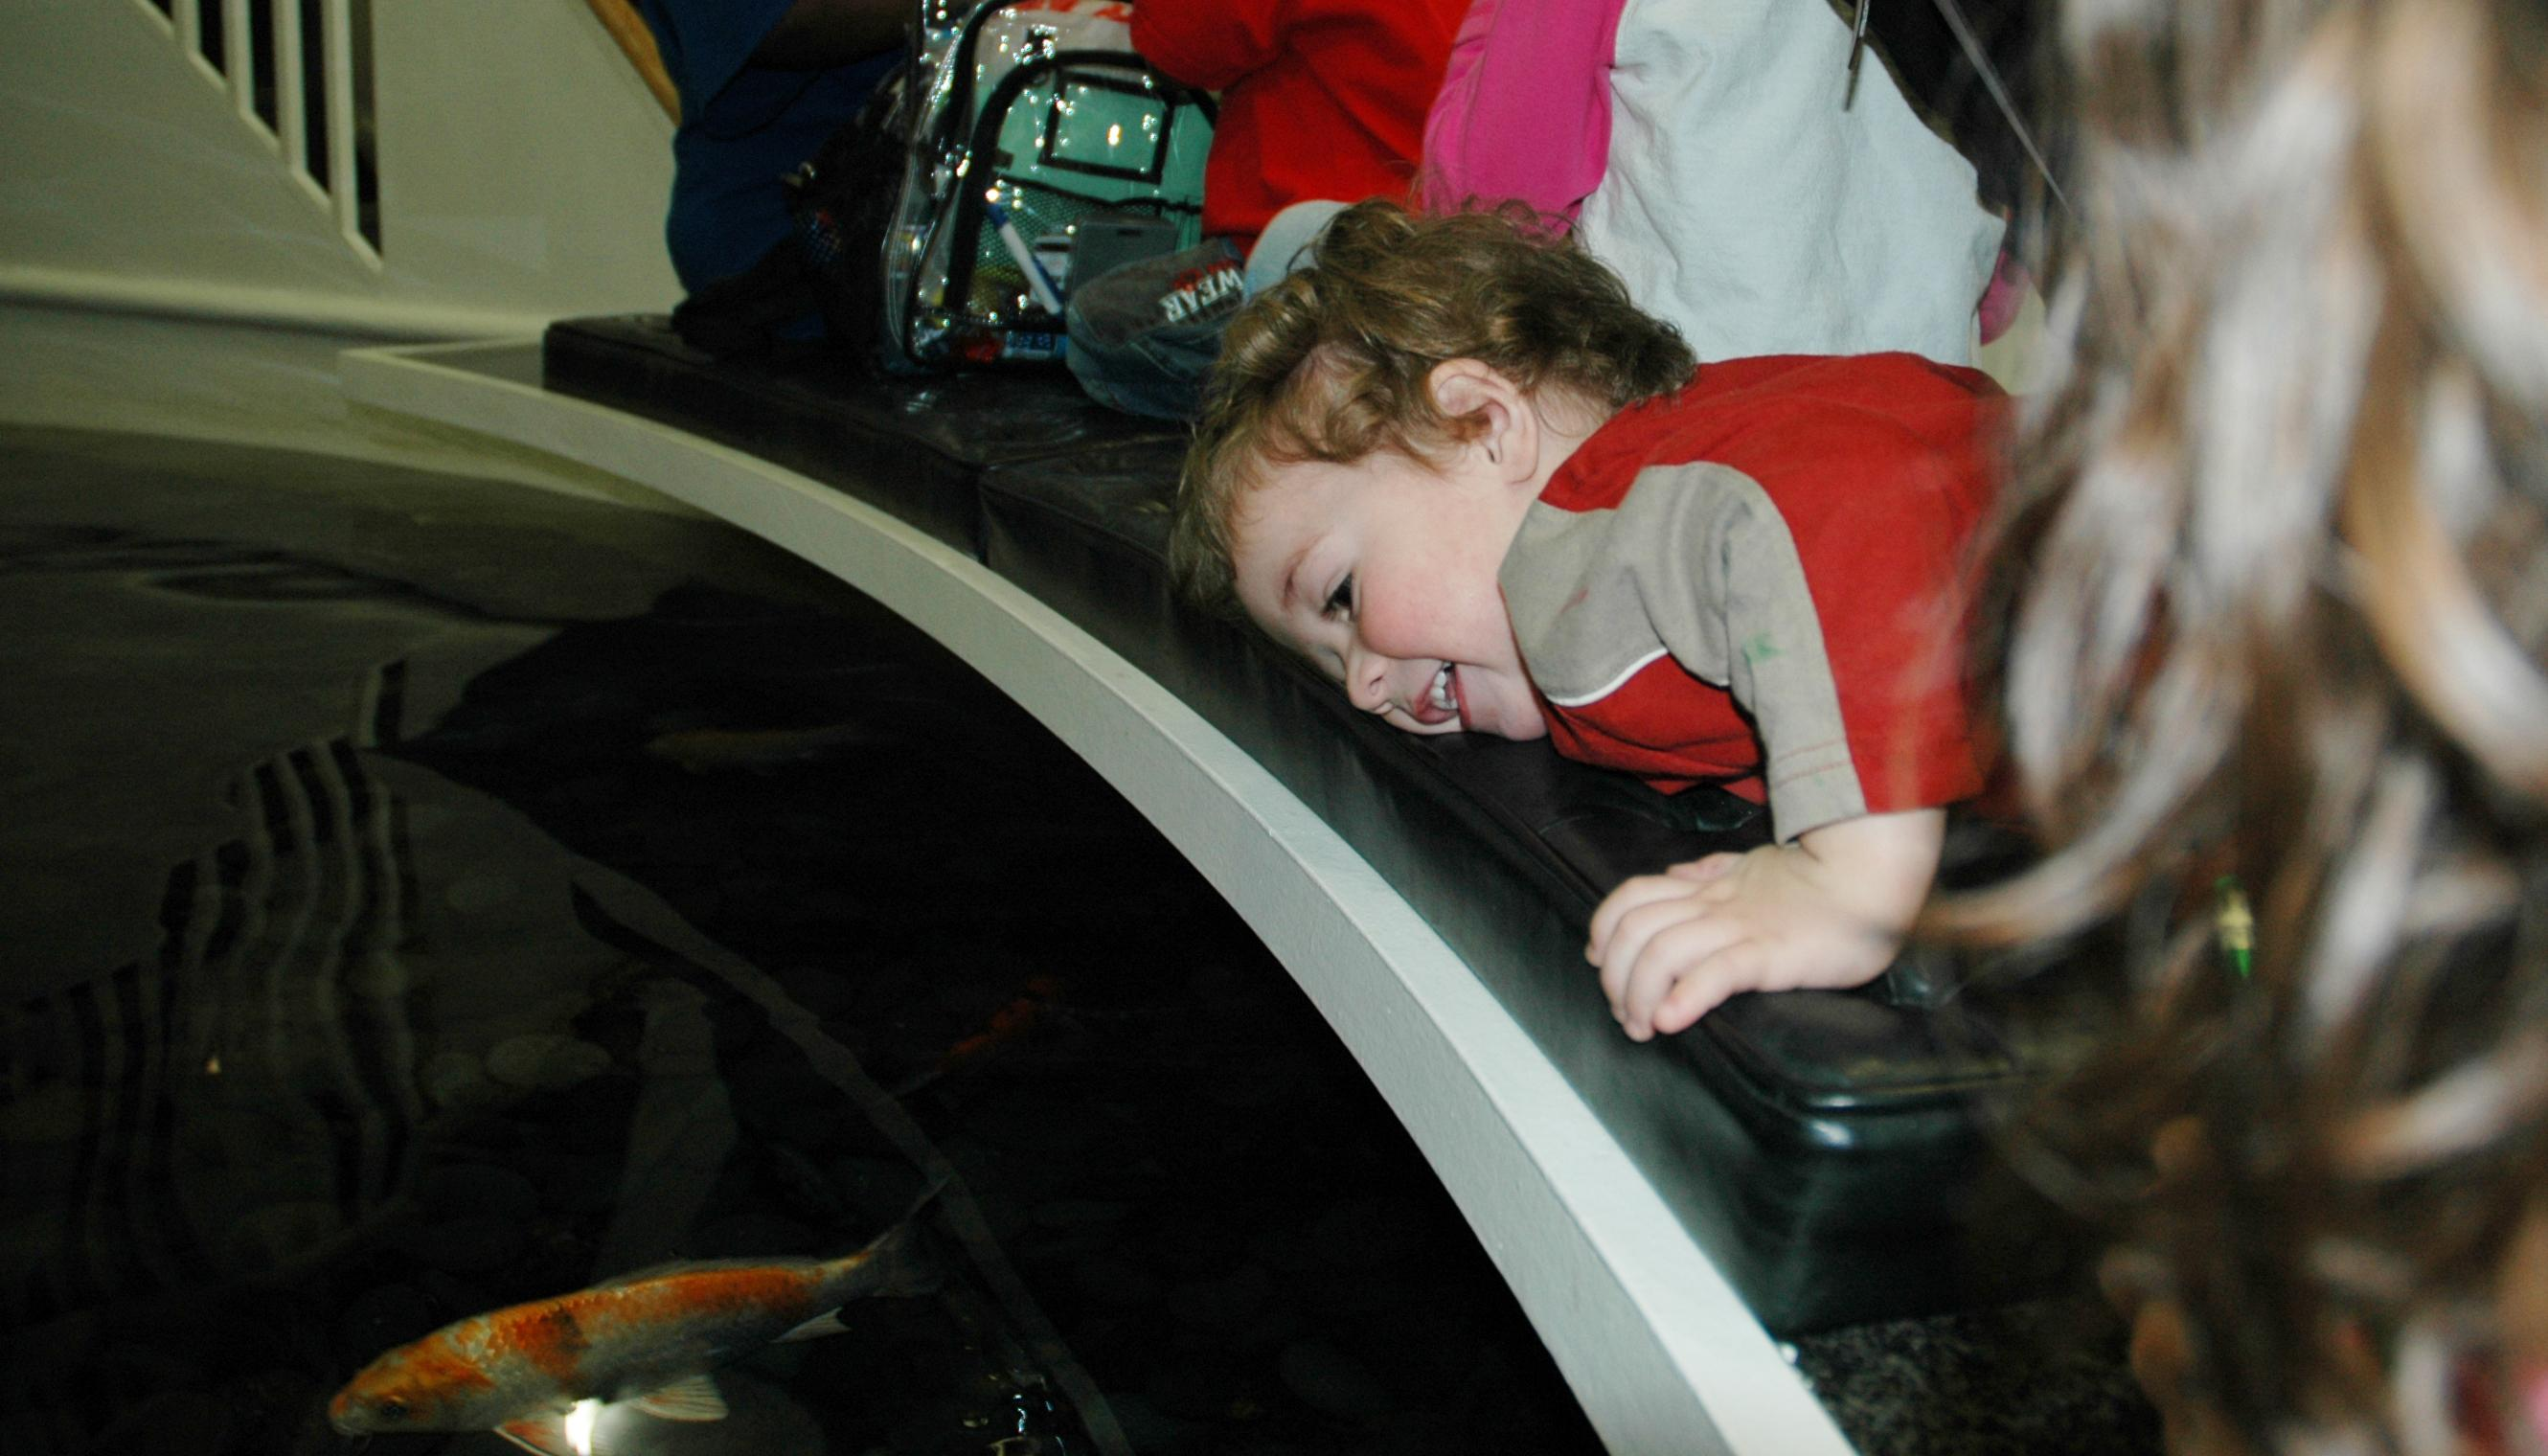 A smiling, little boy presses his face against a bench while looking down at an orange-and-silver fish in an indoor pond.